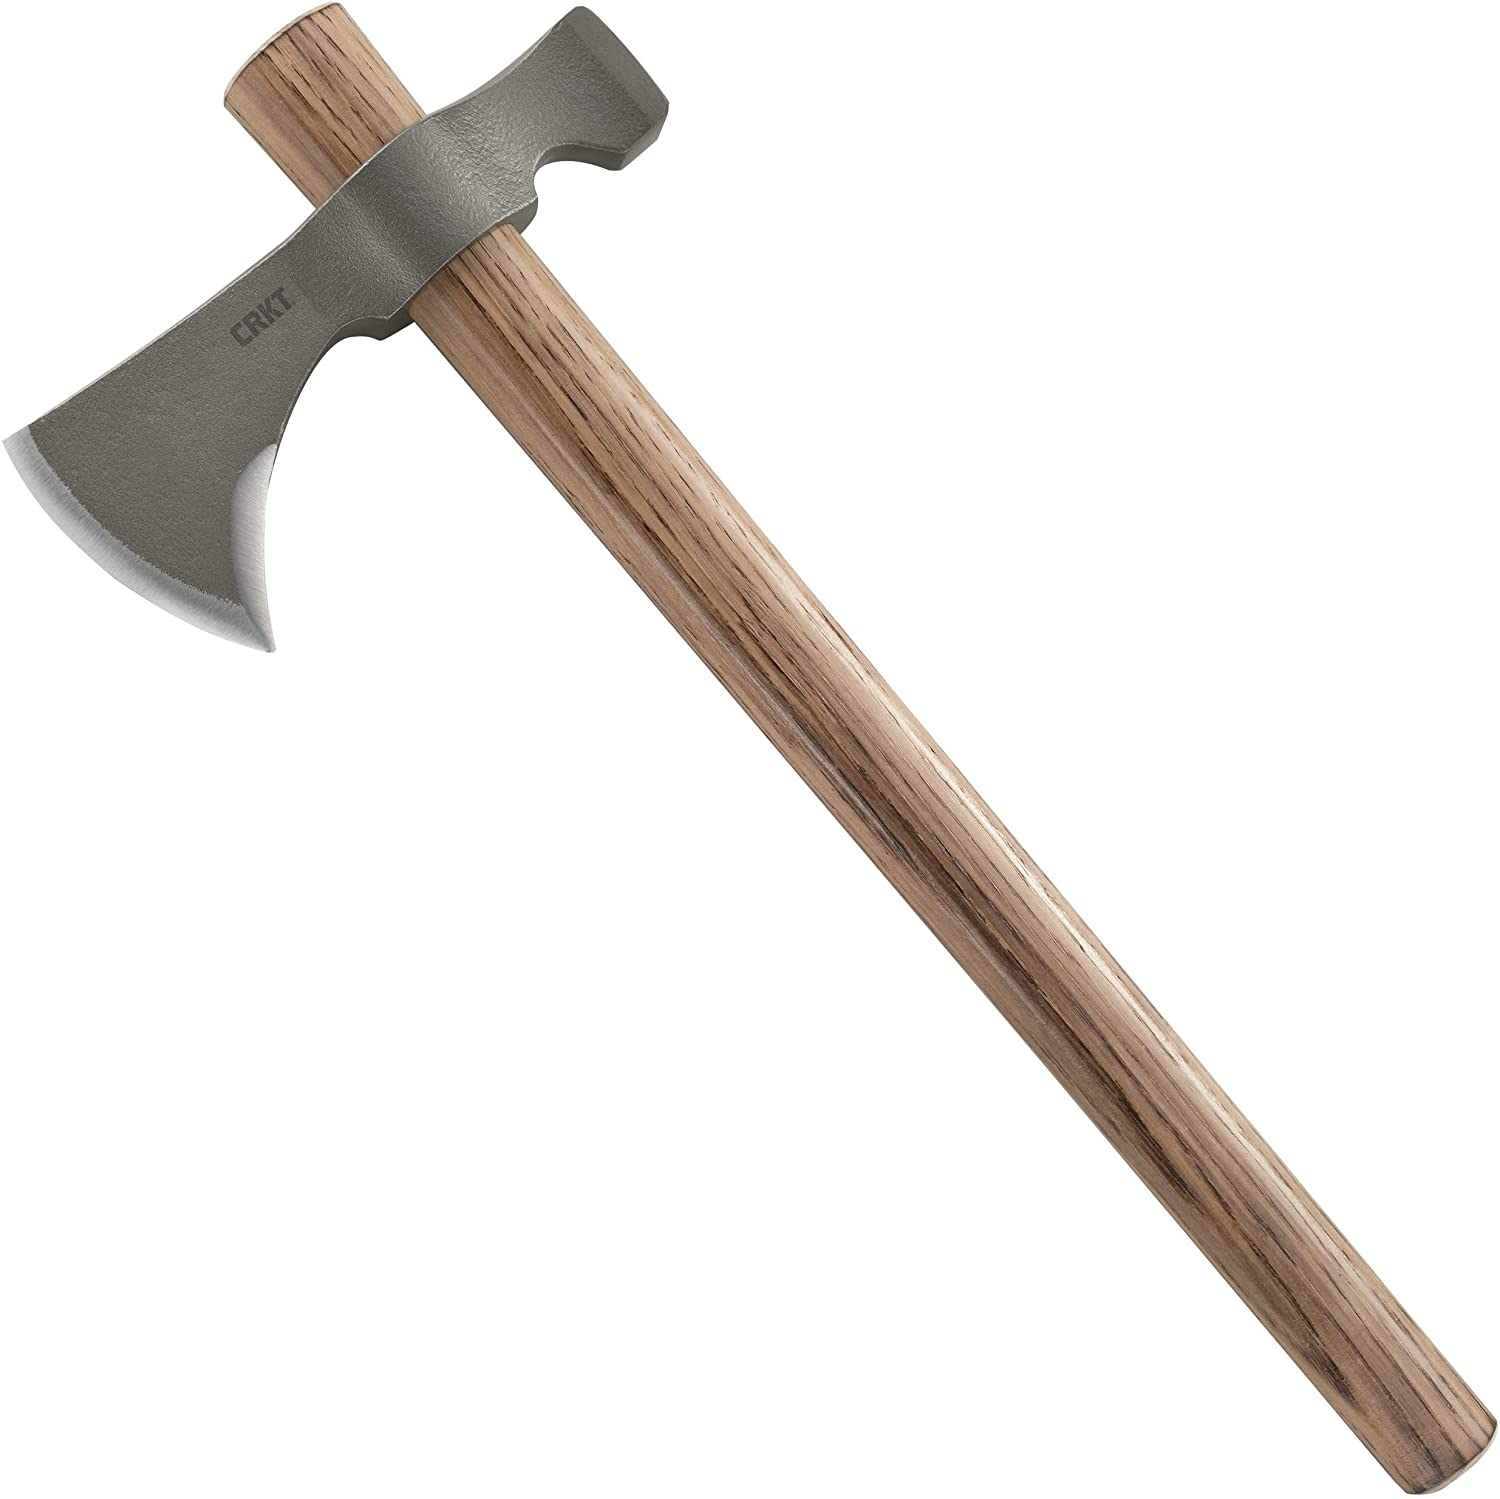 CRKT Woods Forged Carbon Steel Axe